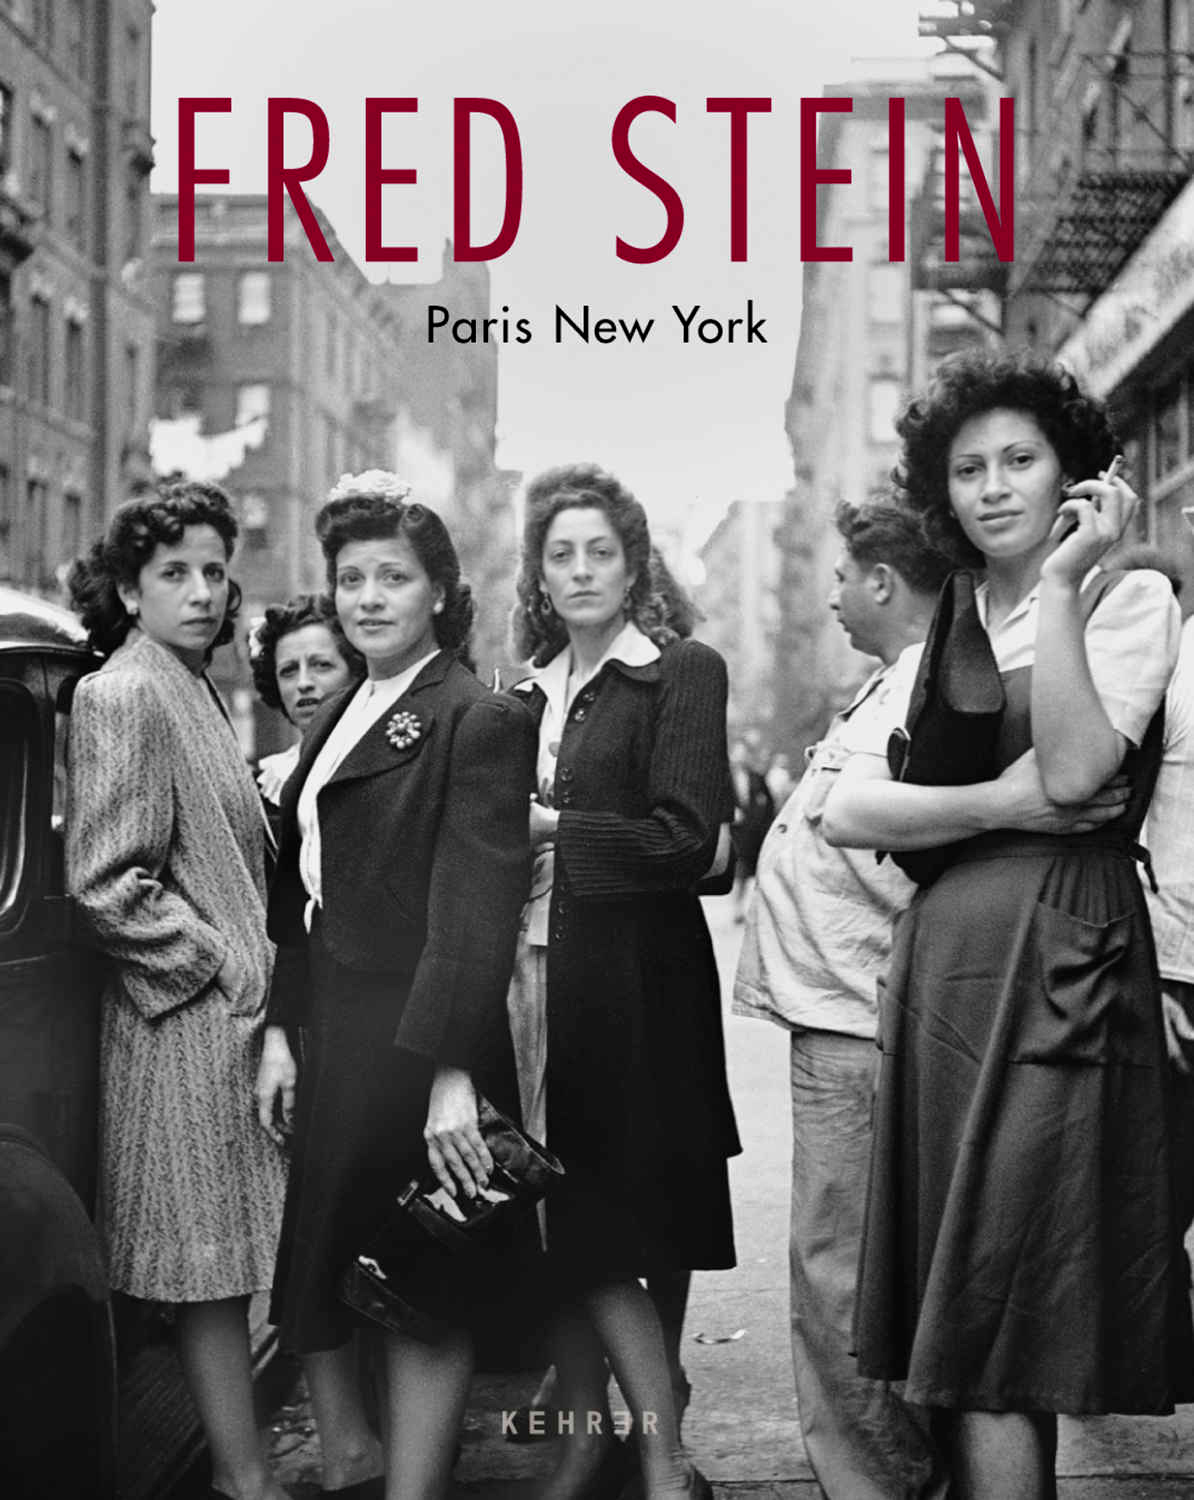 Book Launch: Paris New York by Fred Stein, with Peter Stein & Katherine Freer